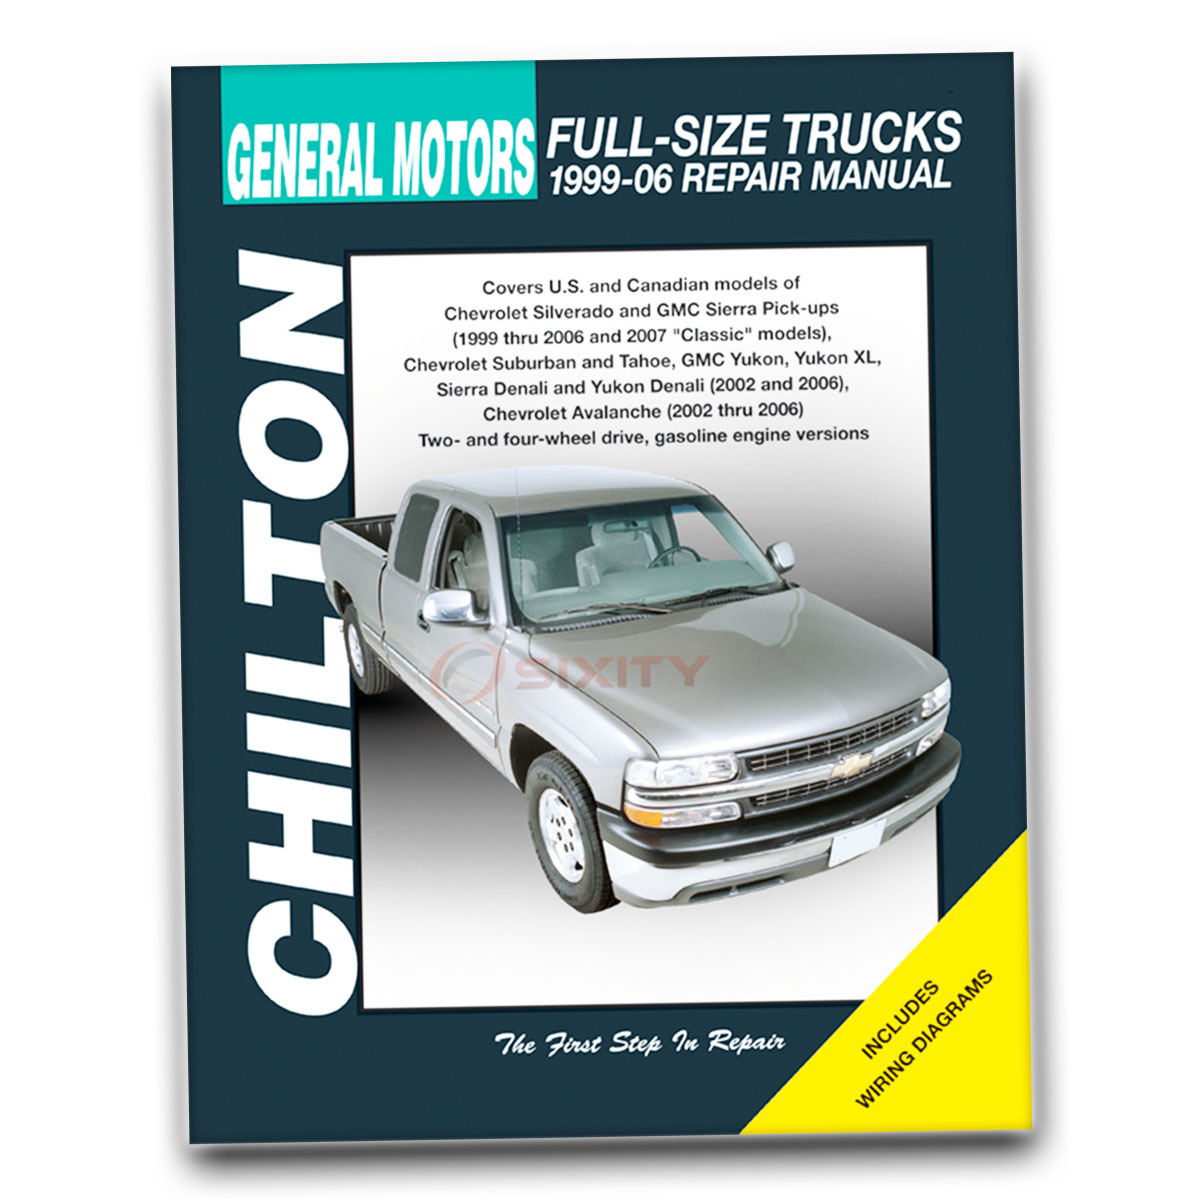 Chilton Repair Manual for Chevy Silverado 2500 HD LT WT LS Base Shop Service  qv